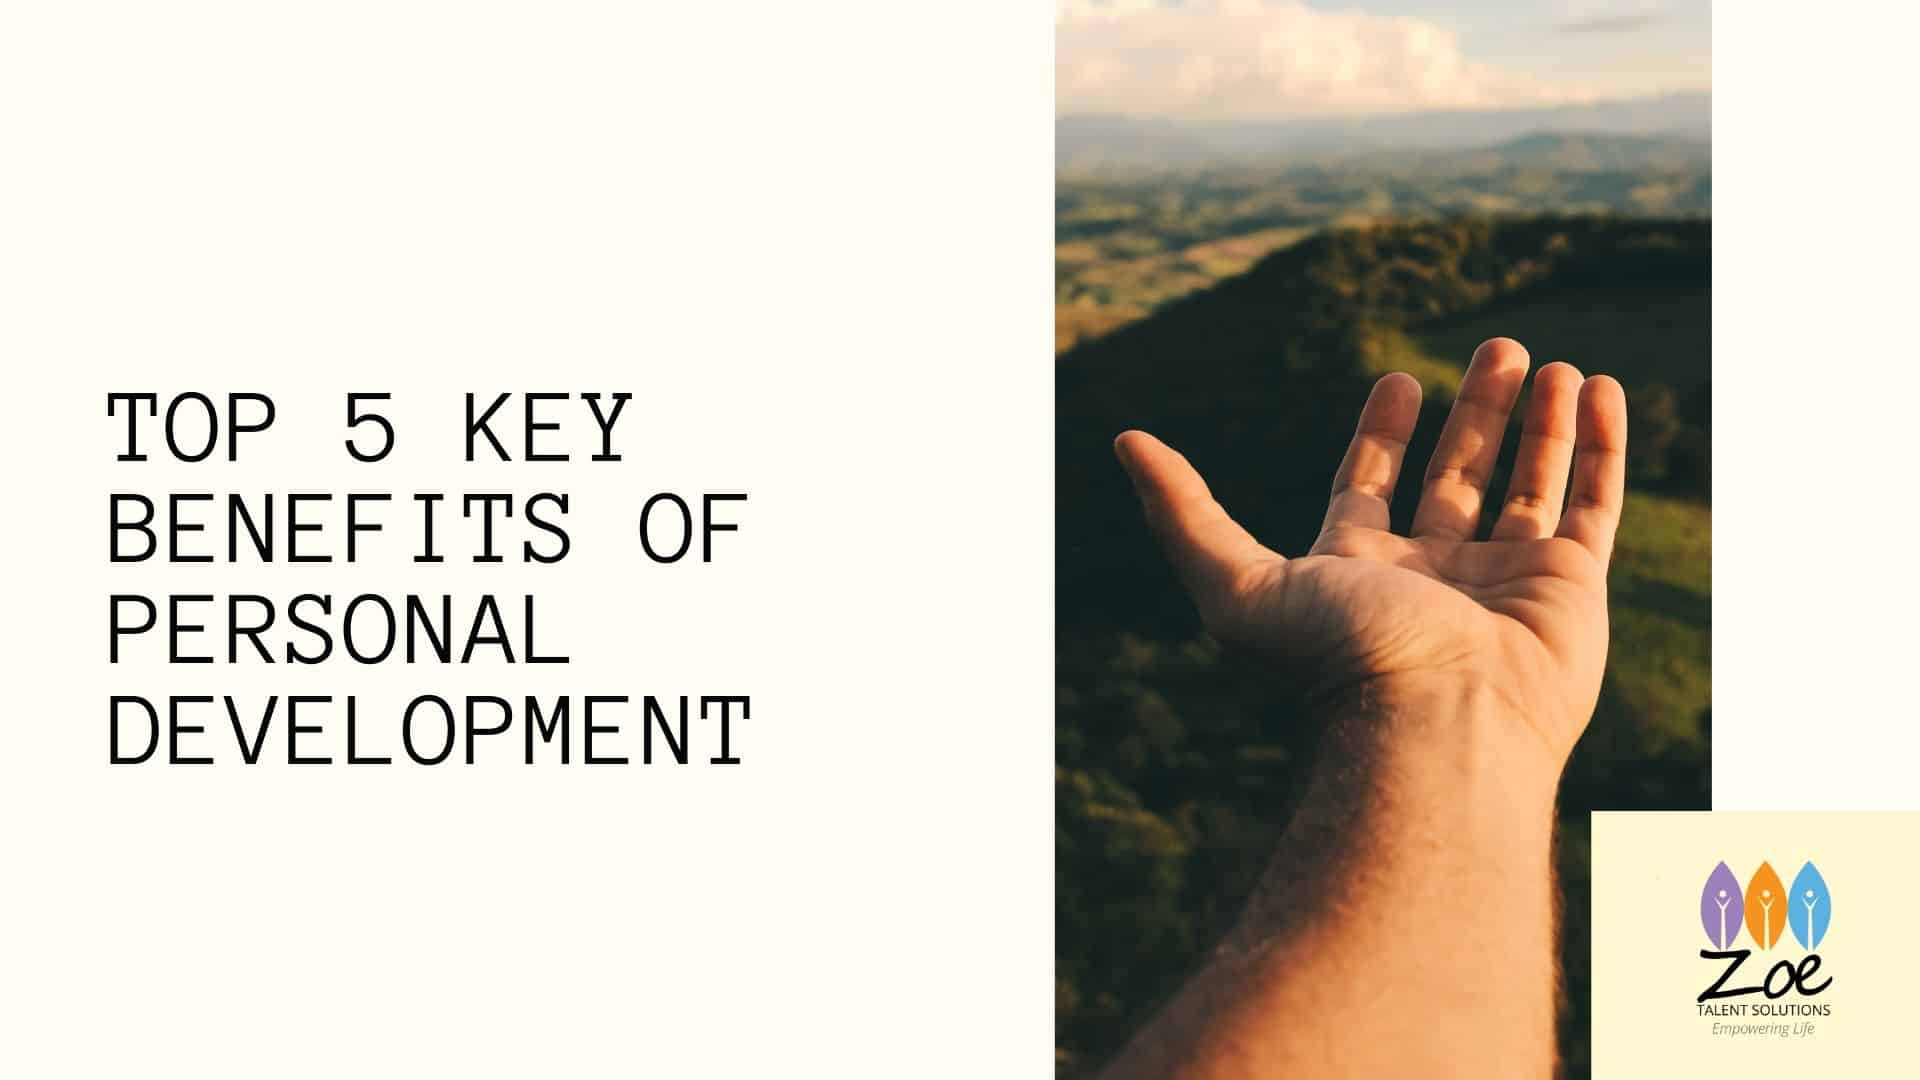 Top 5 Key Benefits of Personal Development